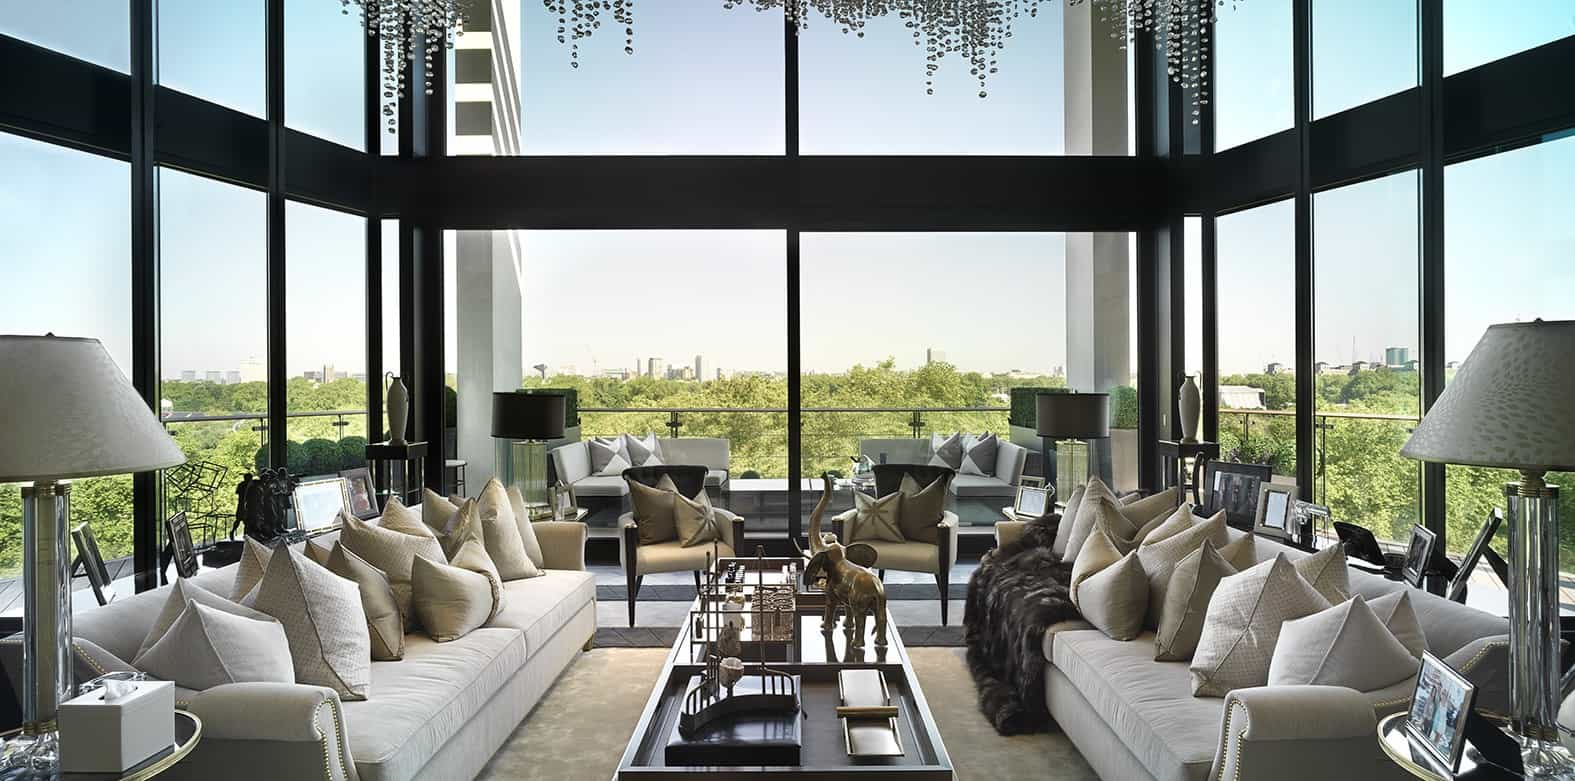 One Hyde Park Penthouse è tra le case più belle e costose al mondo